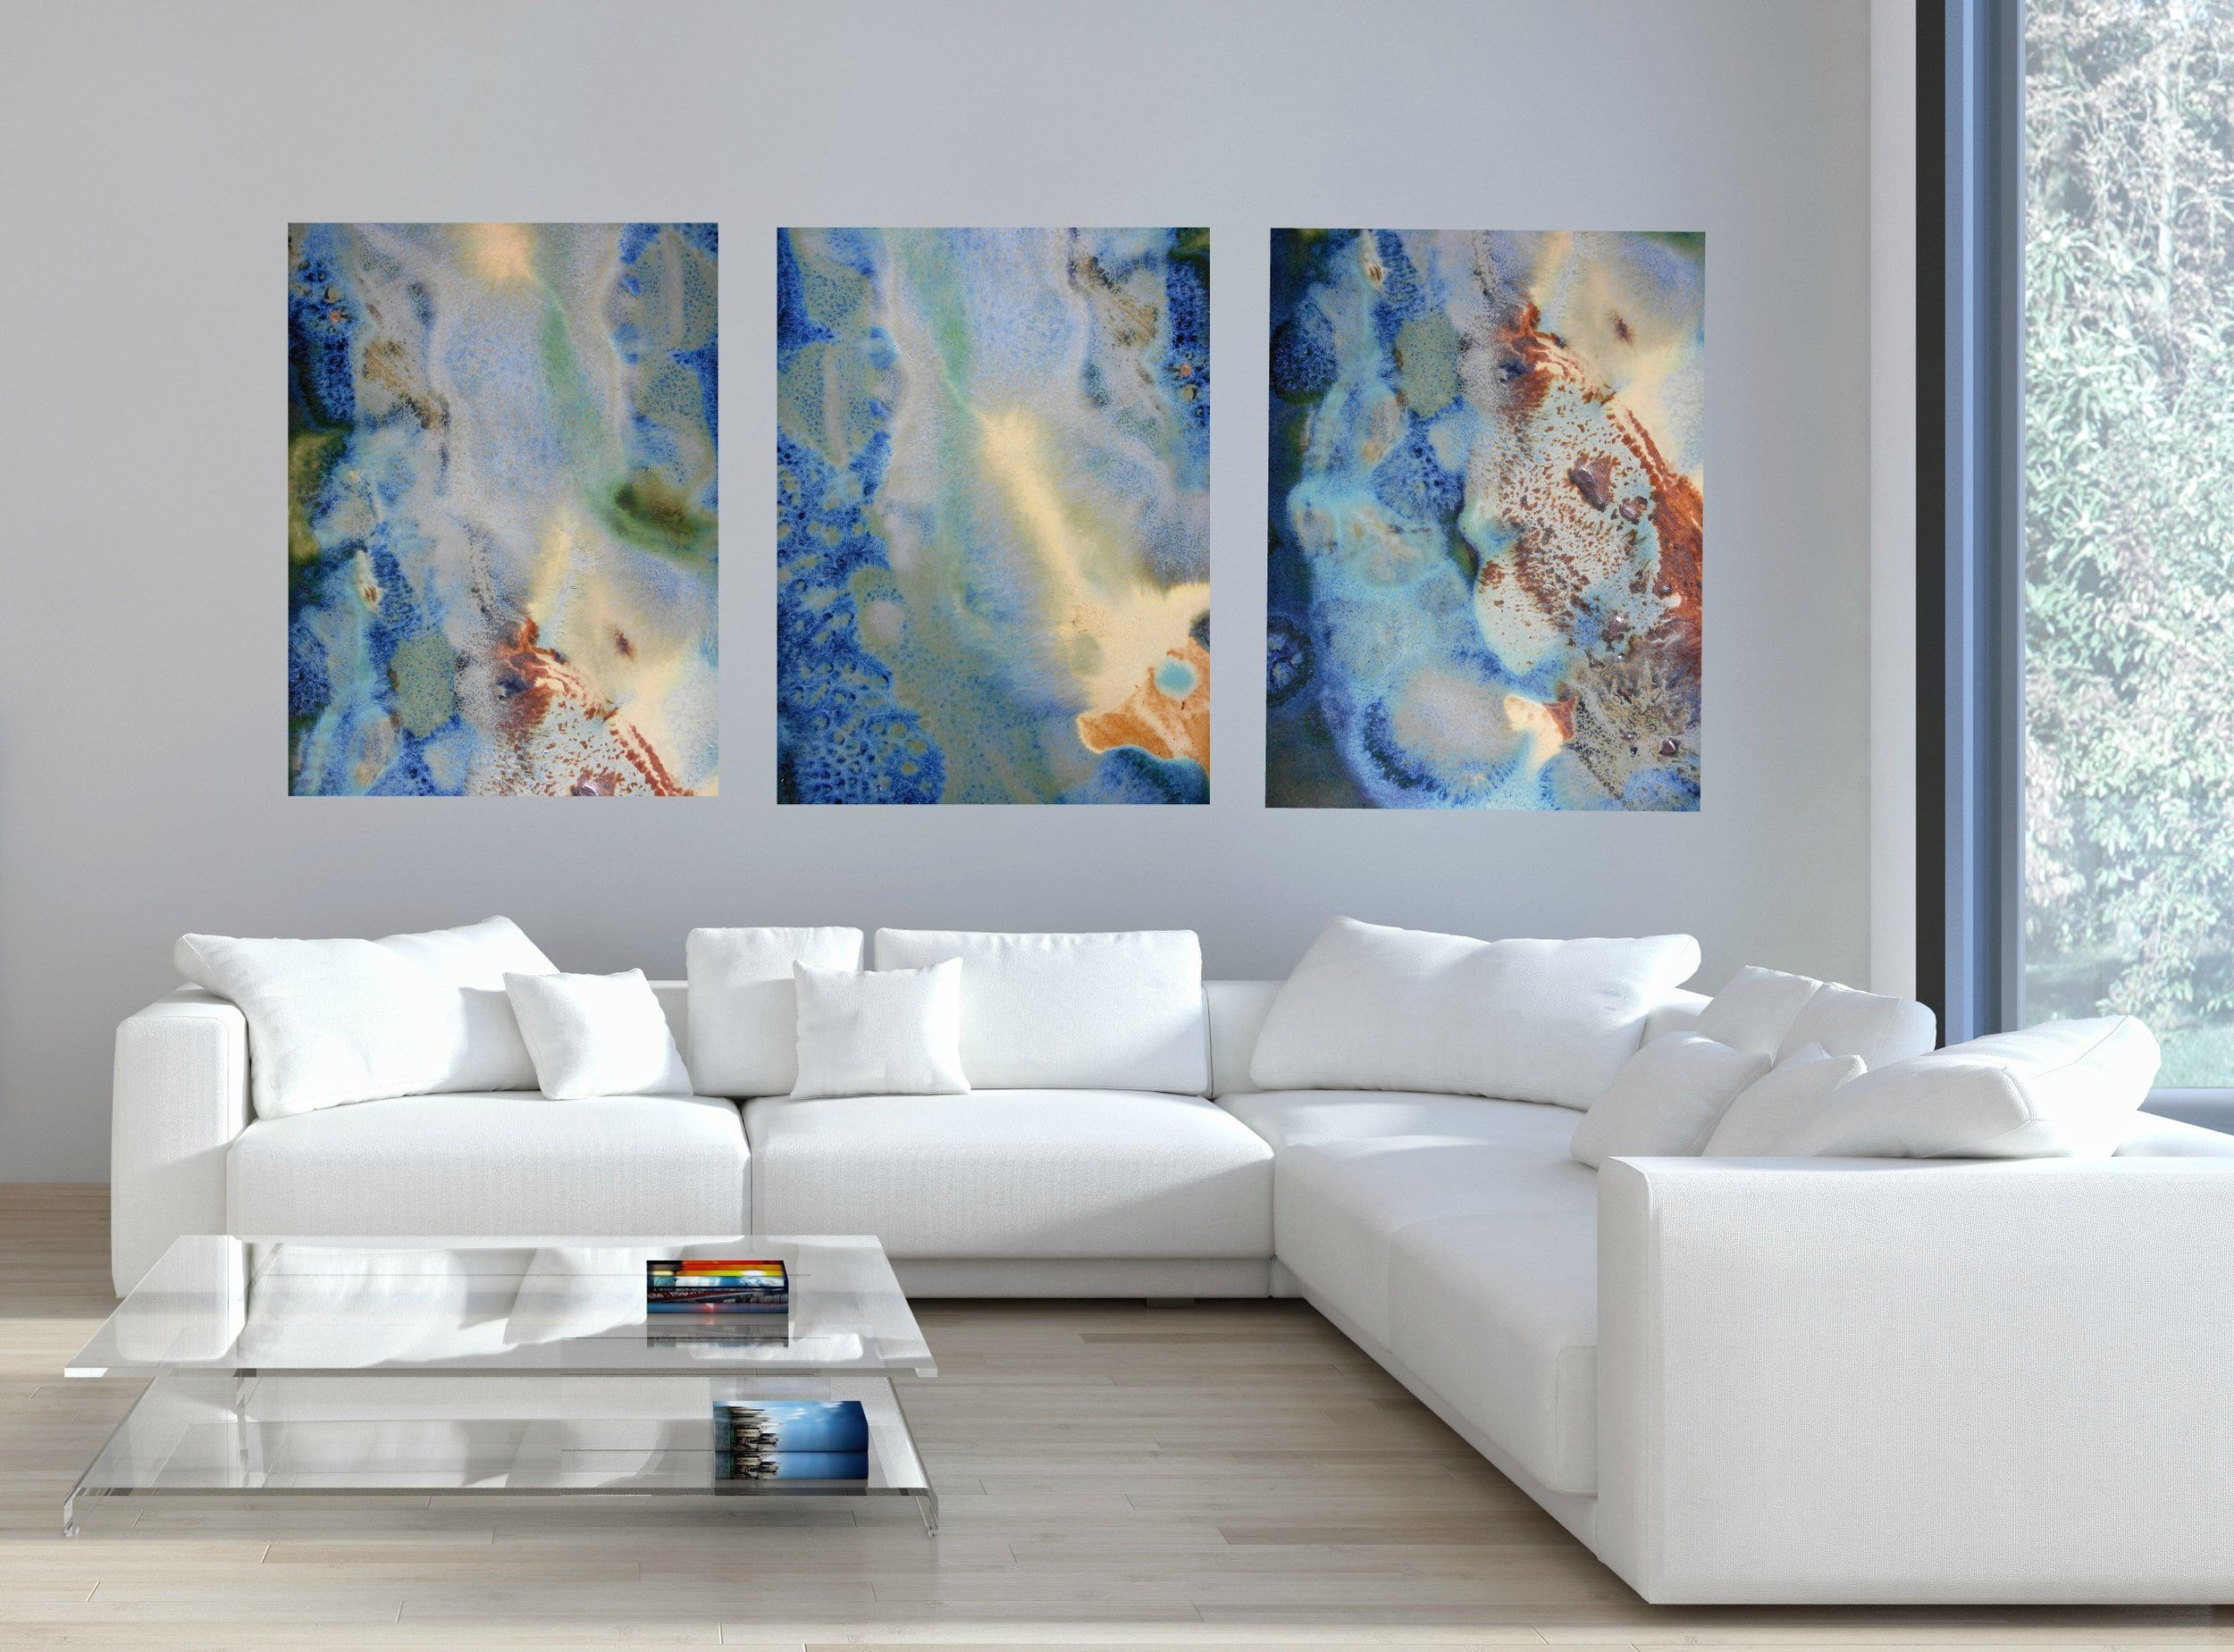 sofa paintings abstract raymour and flanigan clearance sofas set of 3 rectangular green blue yellow canvas